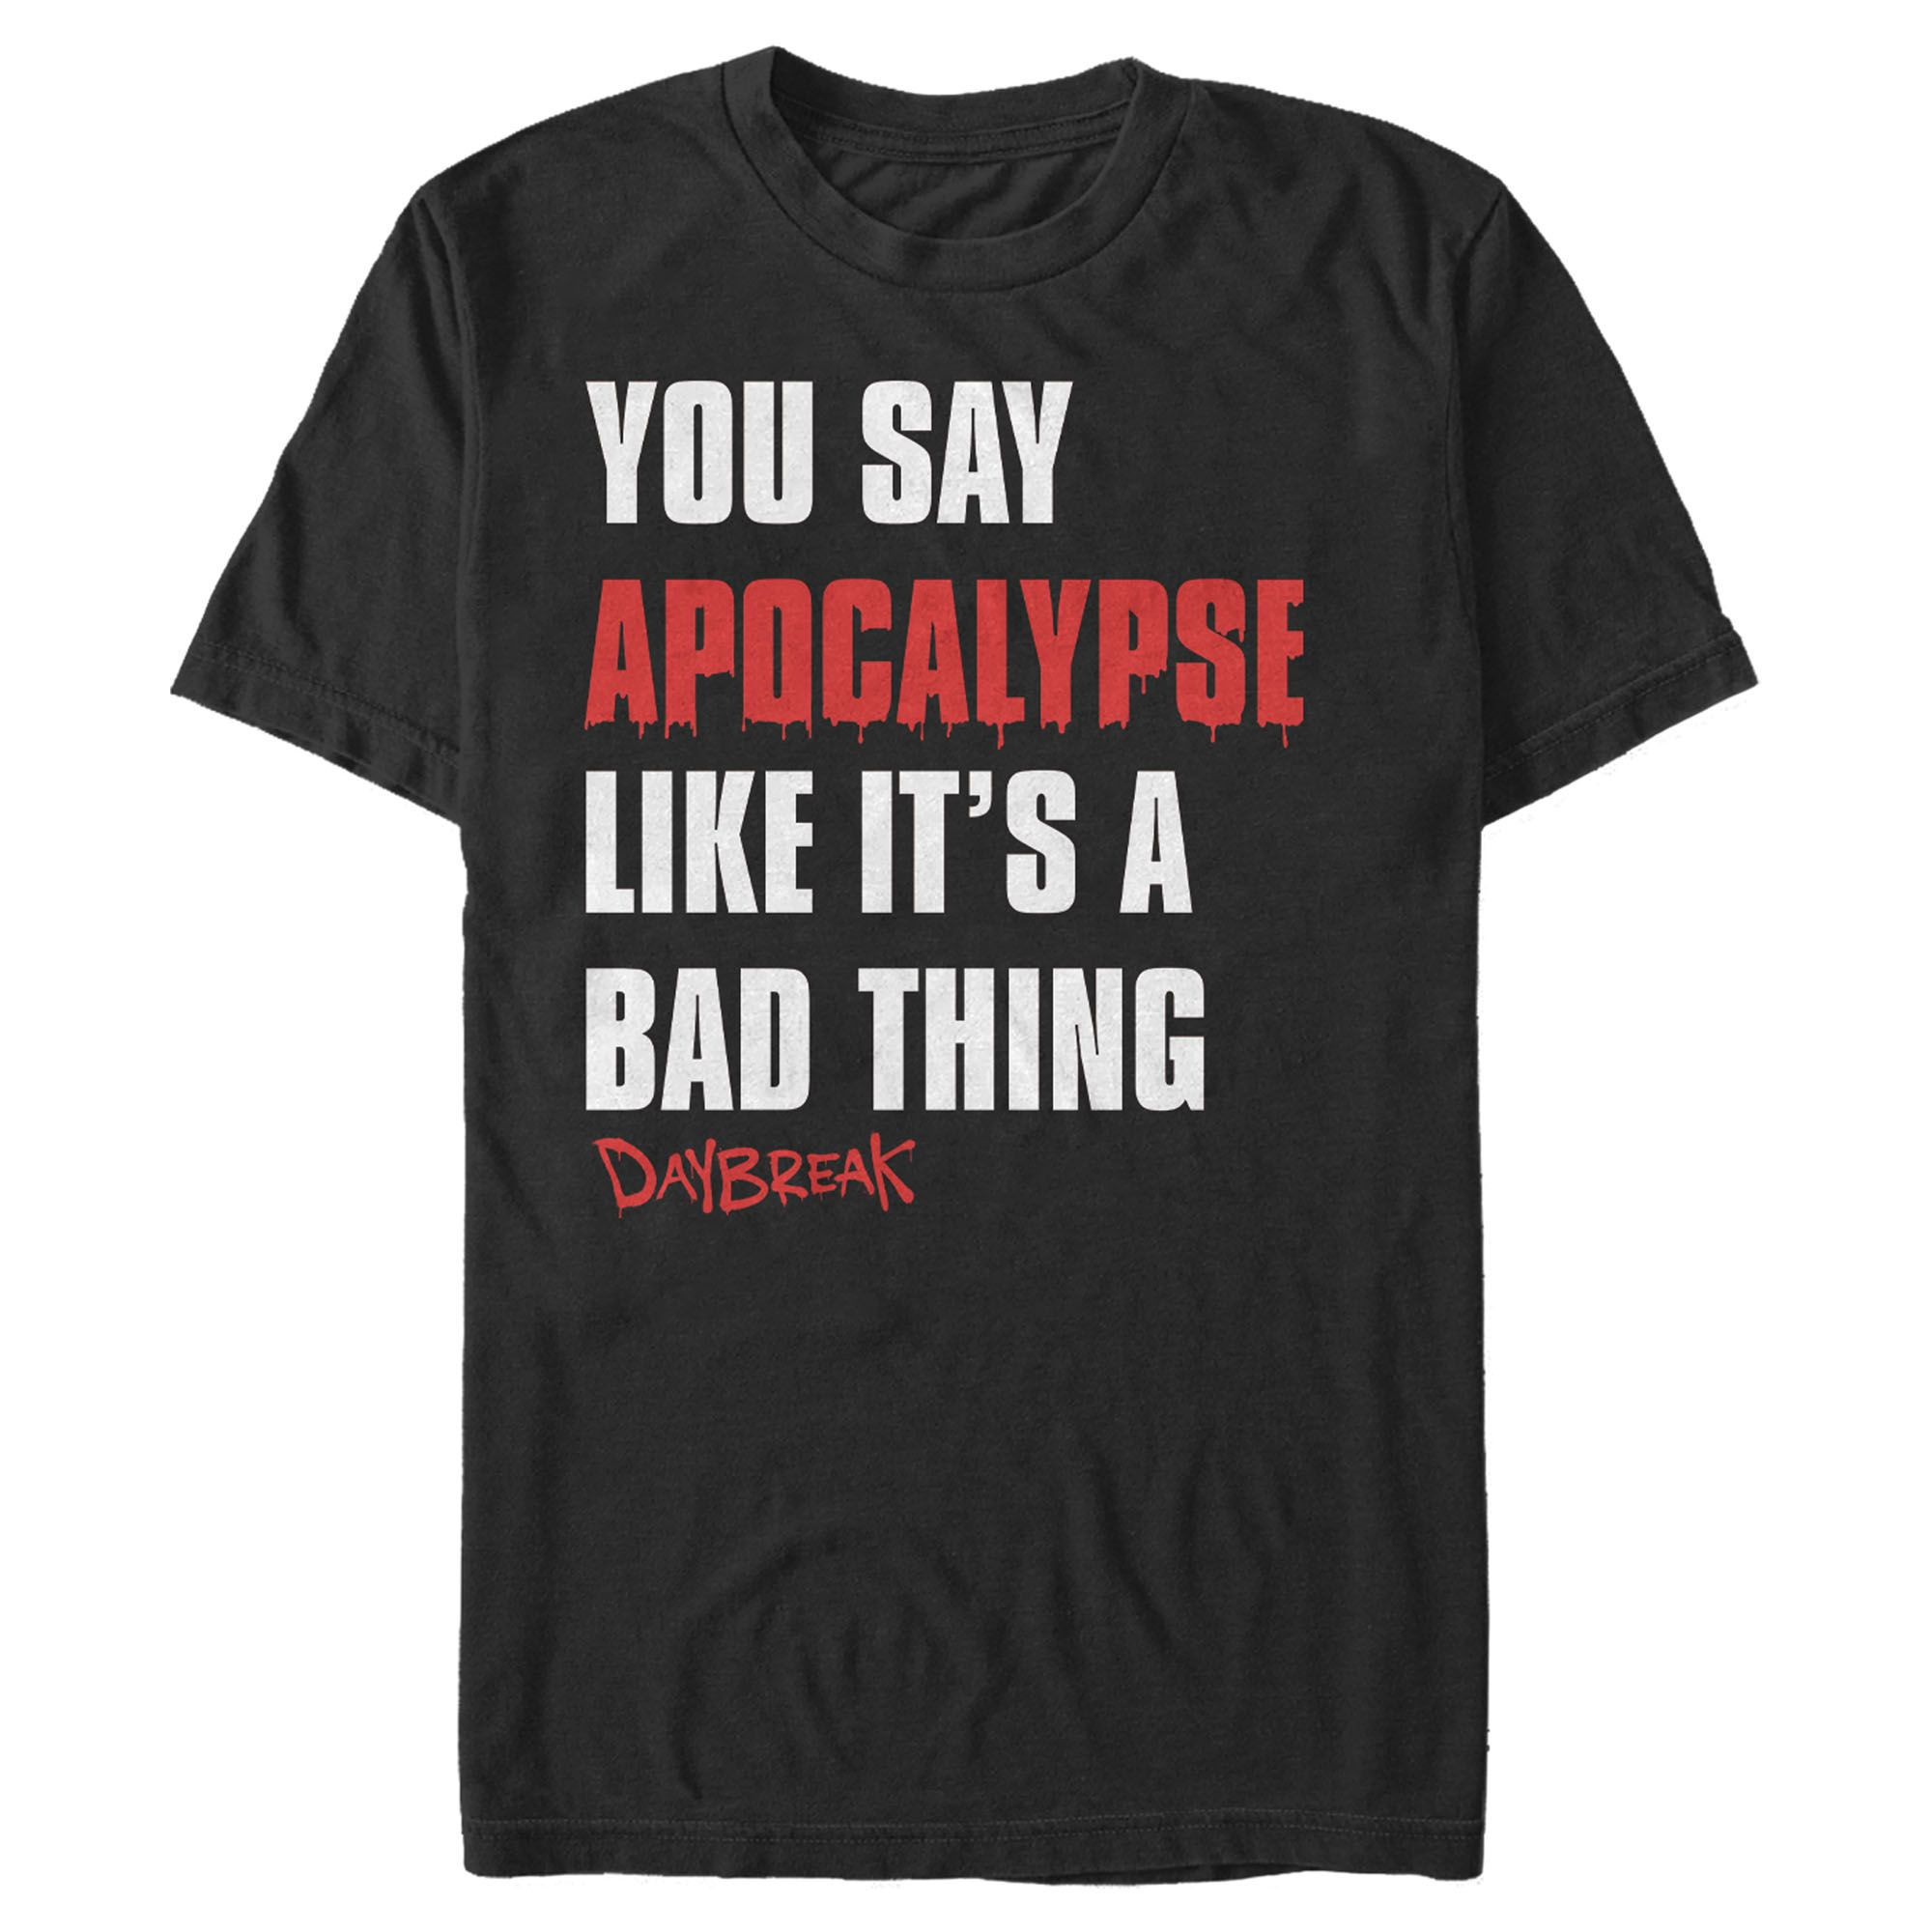 Daybreak Men's You Say Apocalypse Like a Bad Thing T-Shirt